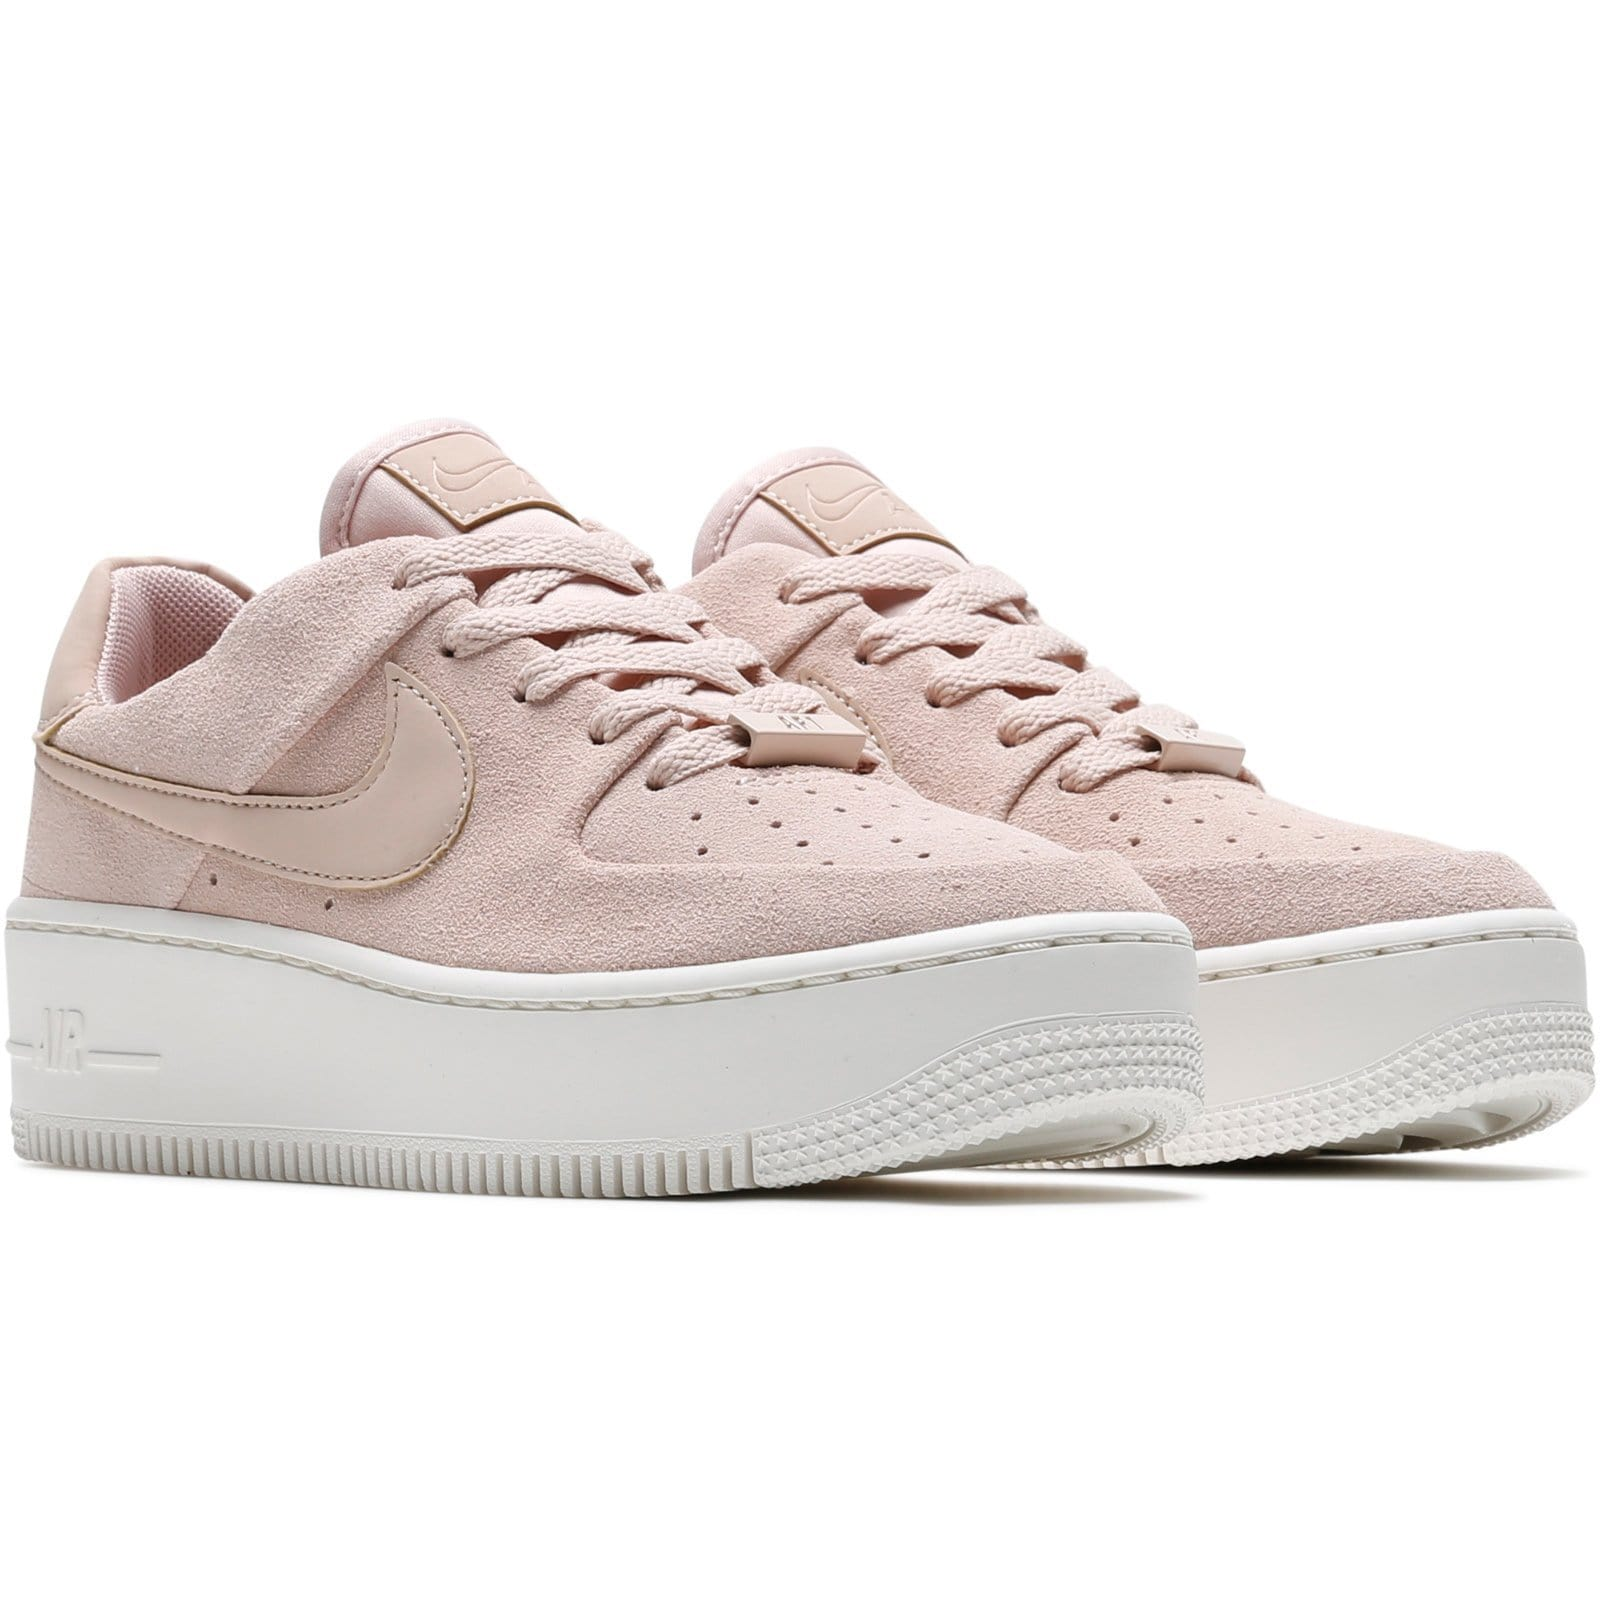 74c3a1cce3f Women s AIR FORCE 1 SAGE LOW AR5339 201 – Bodega